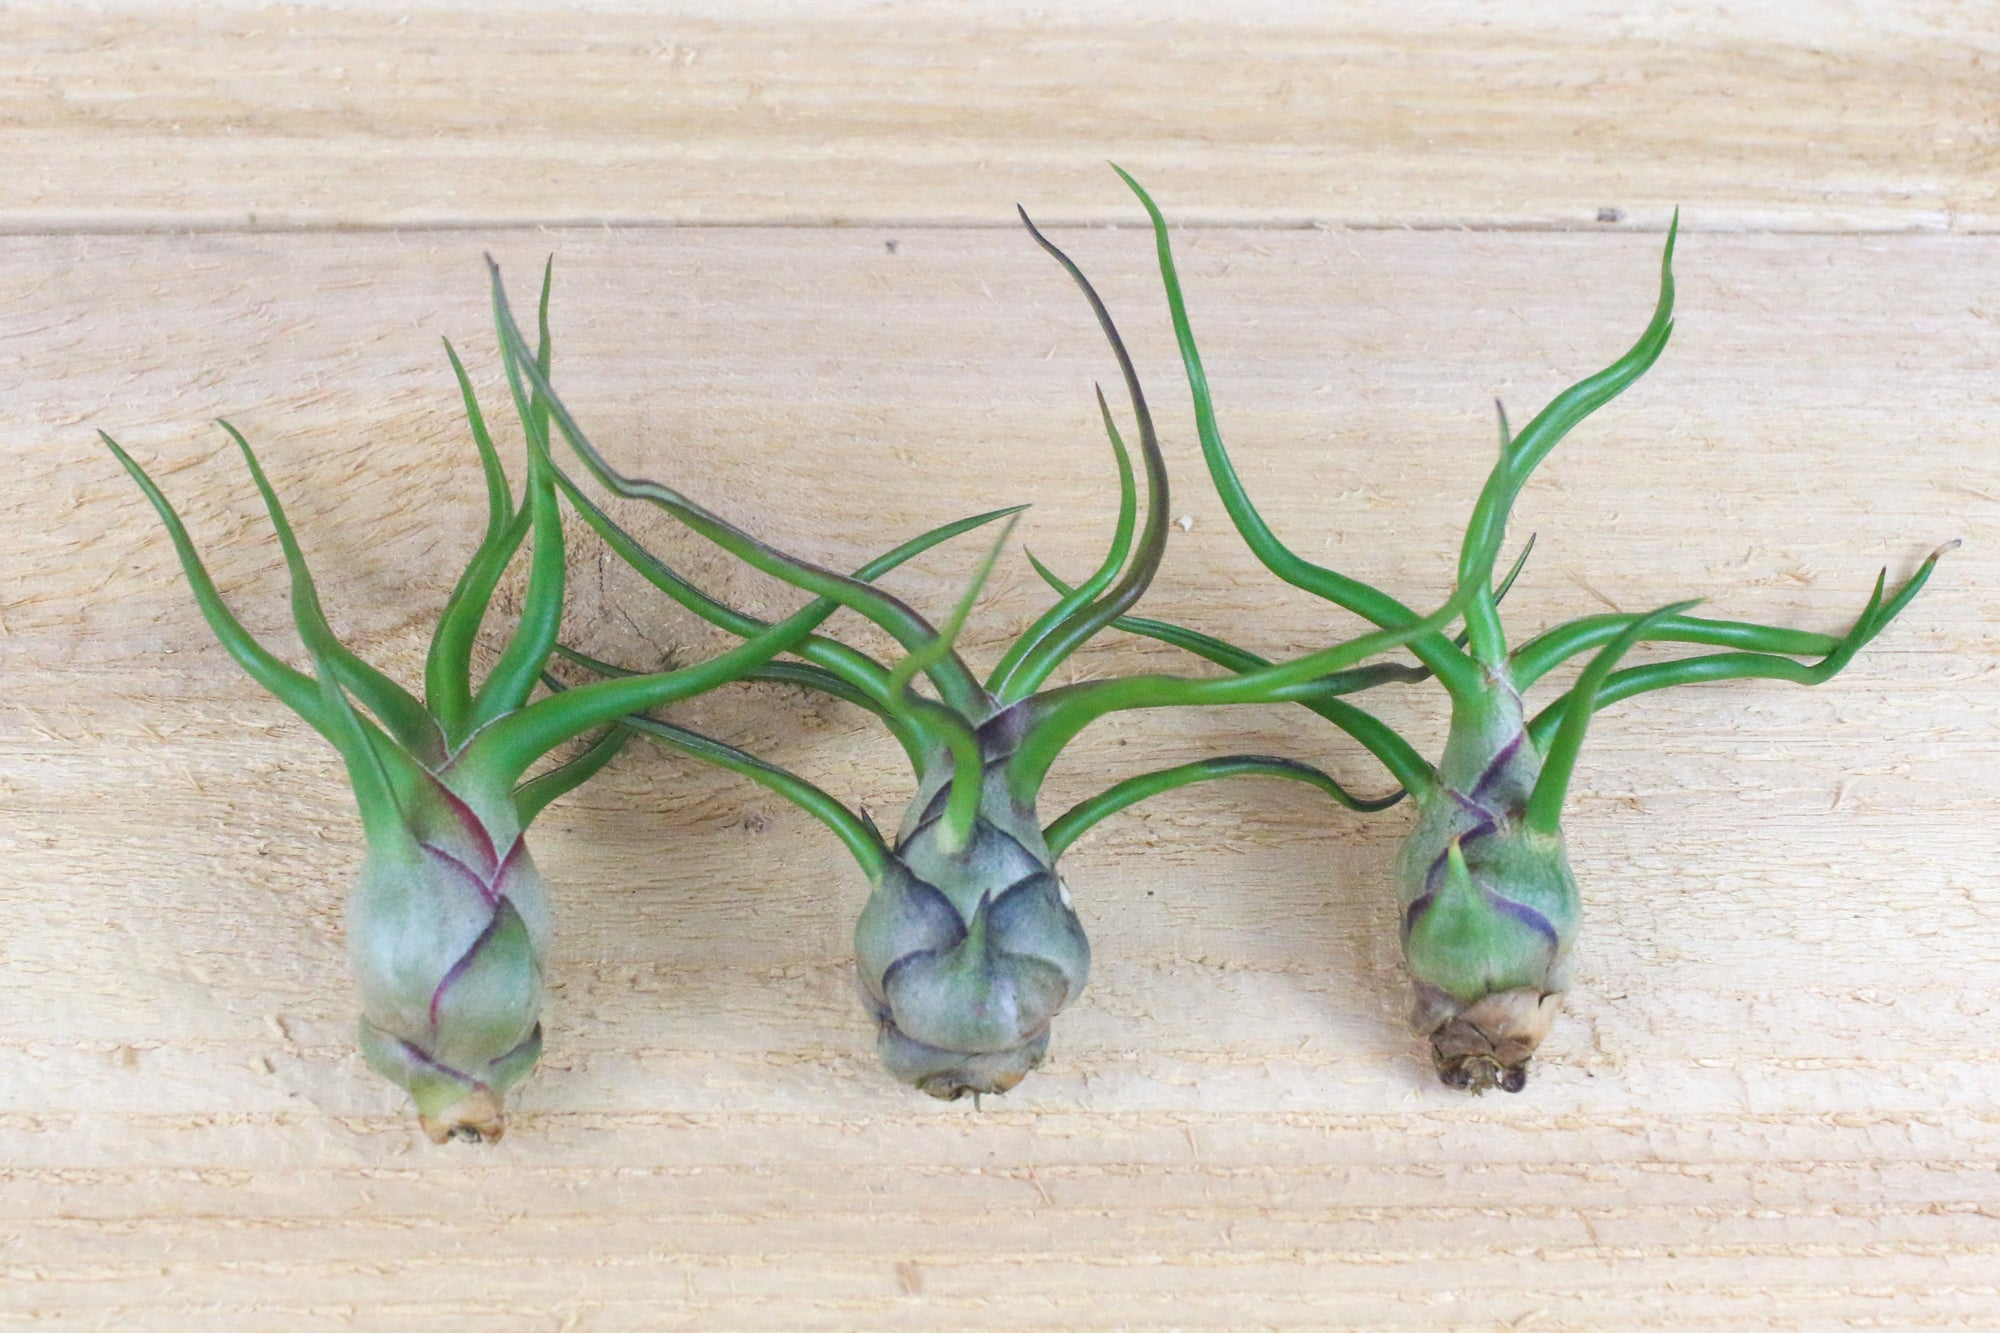 Wholesale: Tillandsia Bulbosa Guatemala Air Plants [Min Order 12] from AirPlantShop.com